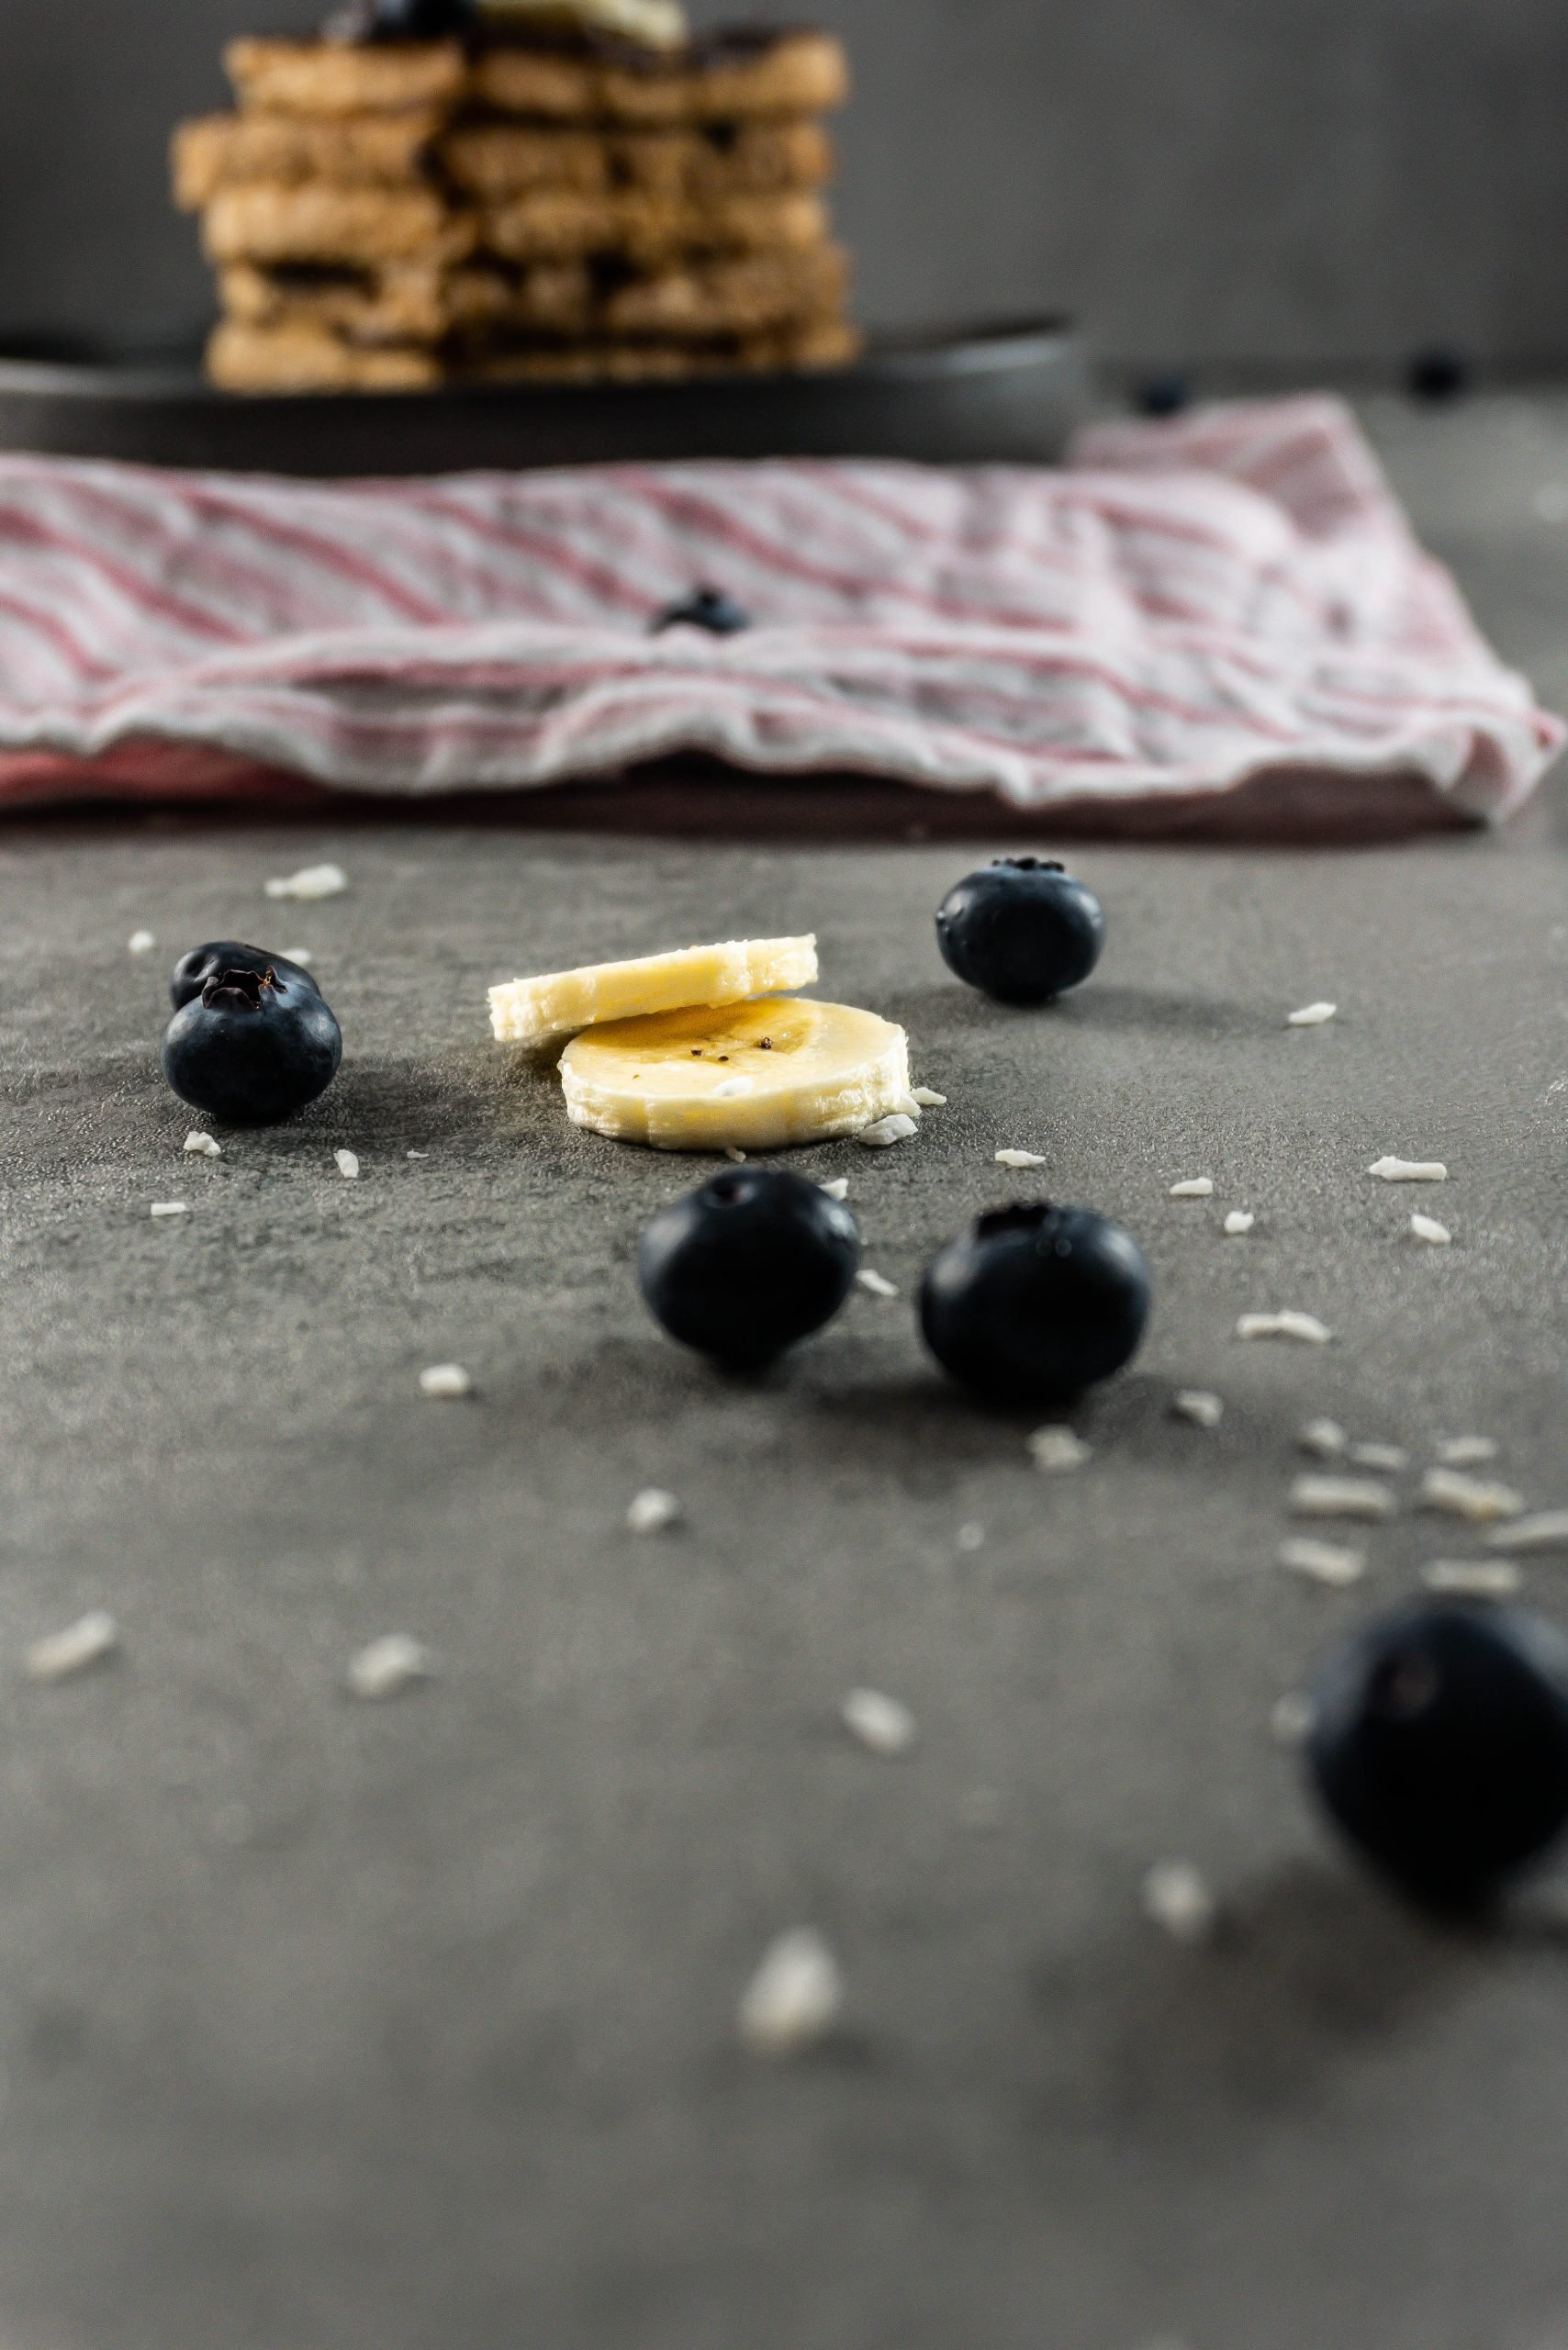 Banana slices and blueberries in focus with a stack of Cinnamon Banana French Toast visible in the back